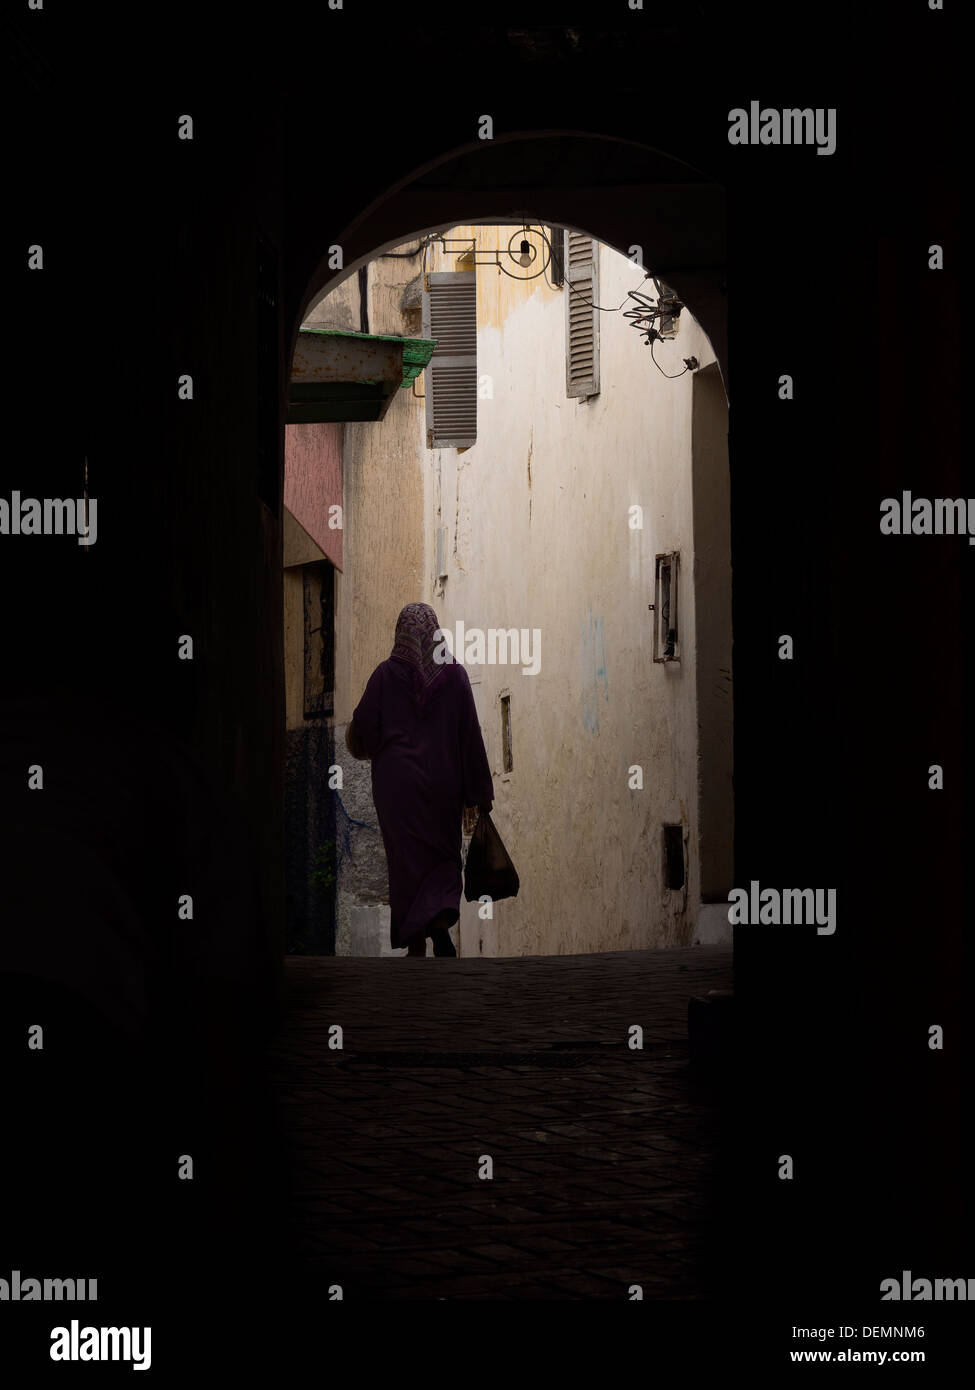 Silhouette of arab woman with hijab walking through a dark alley in Tangier, Morocco - Stock Image